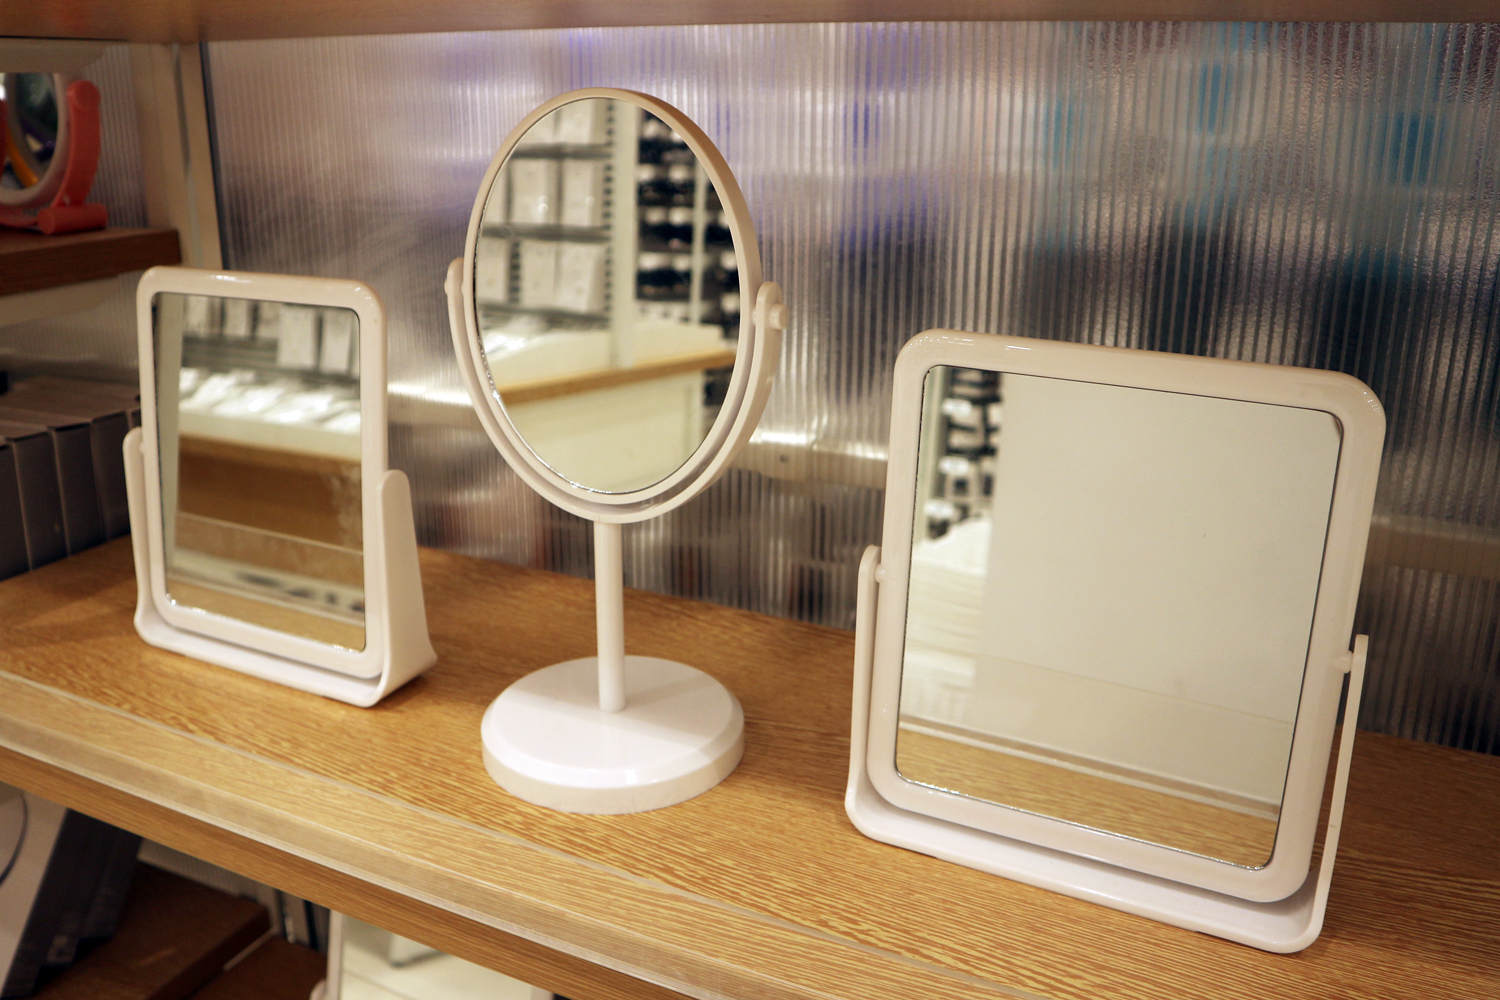 Desk mirrors are P99 to P149 each